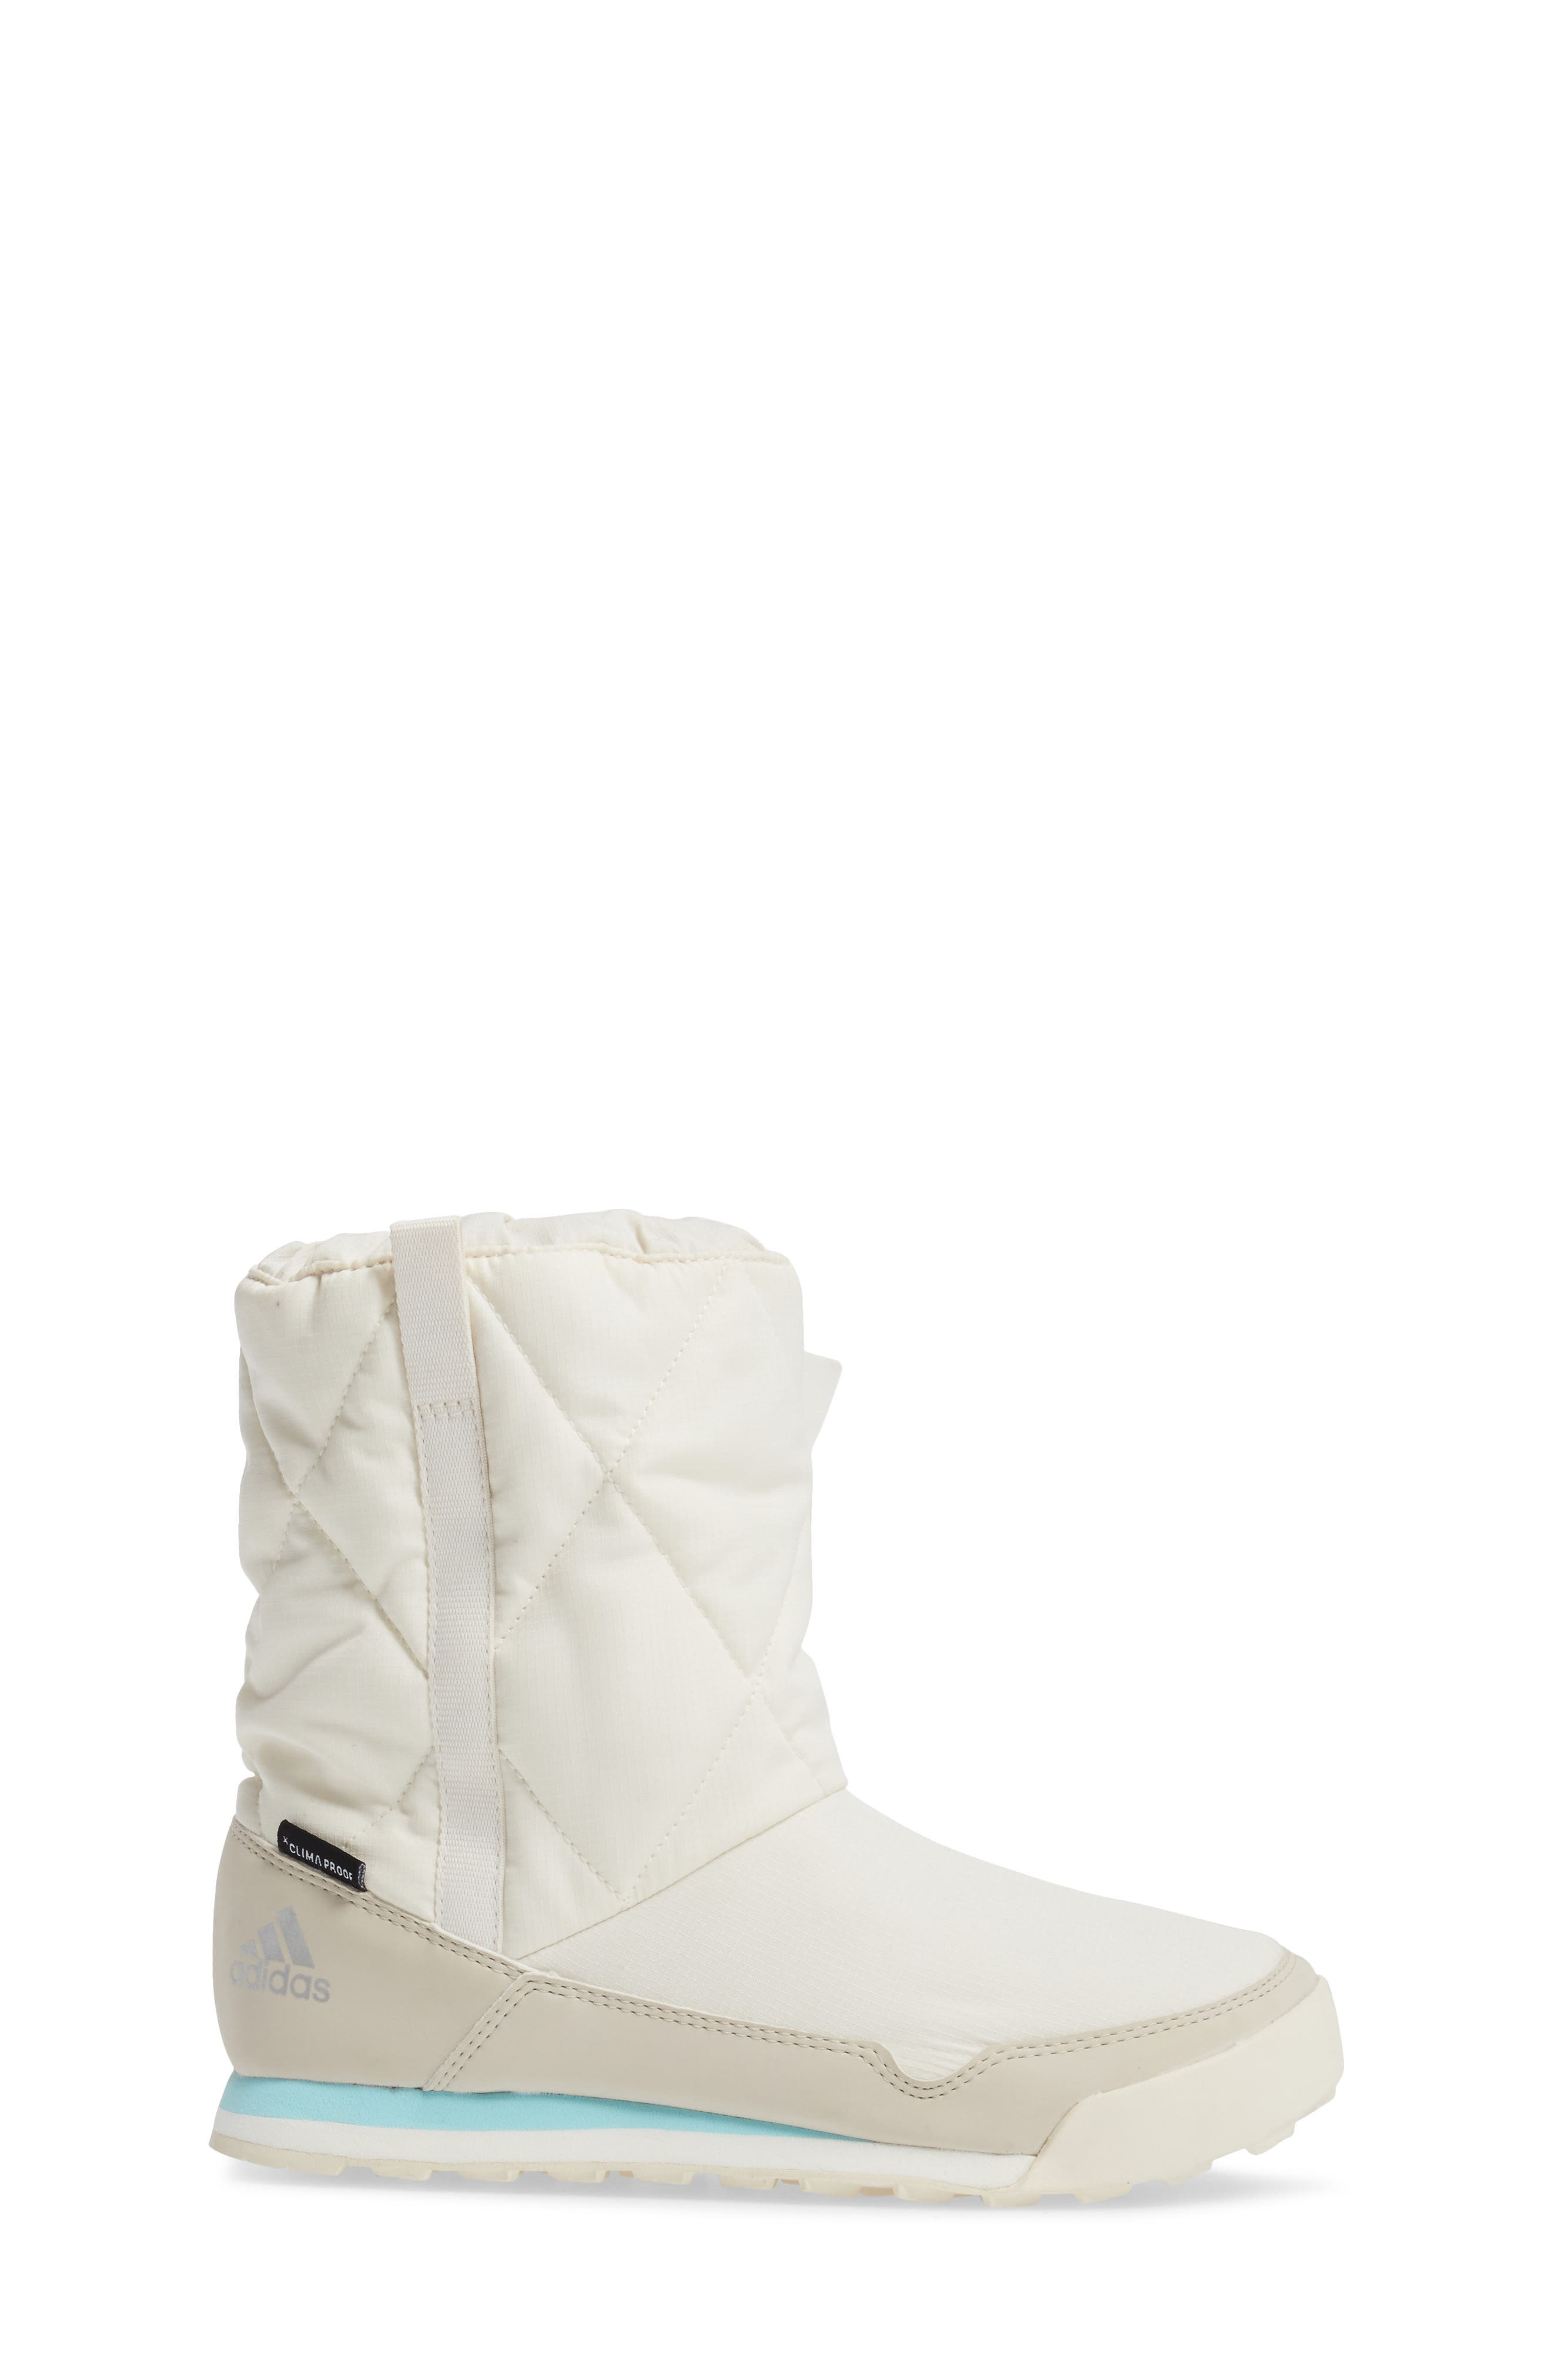 Alternate Image 3  - adidas CW Snowpitch Insulated Waterproof Boot (Toddler, Little Kid & Big Kid)